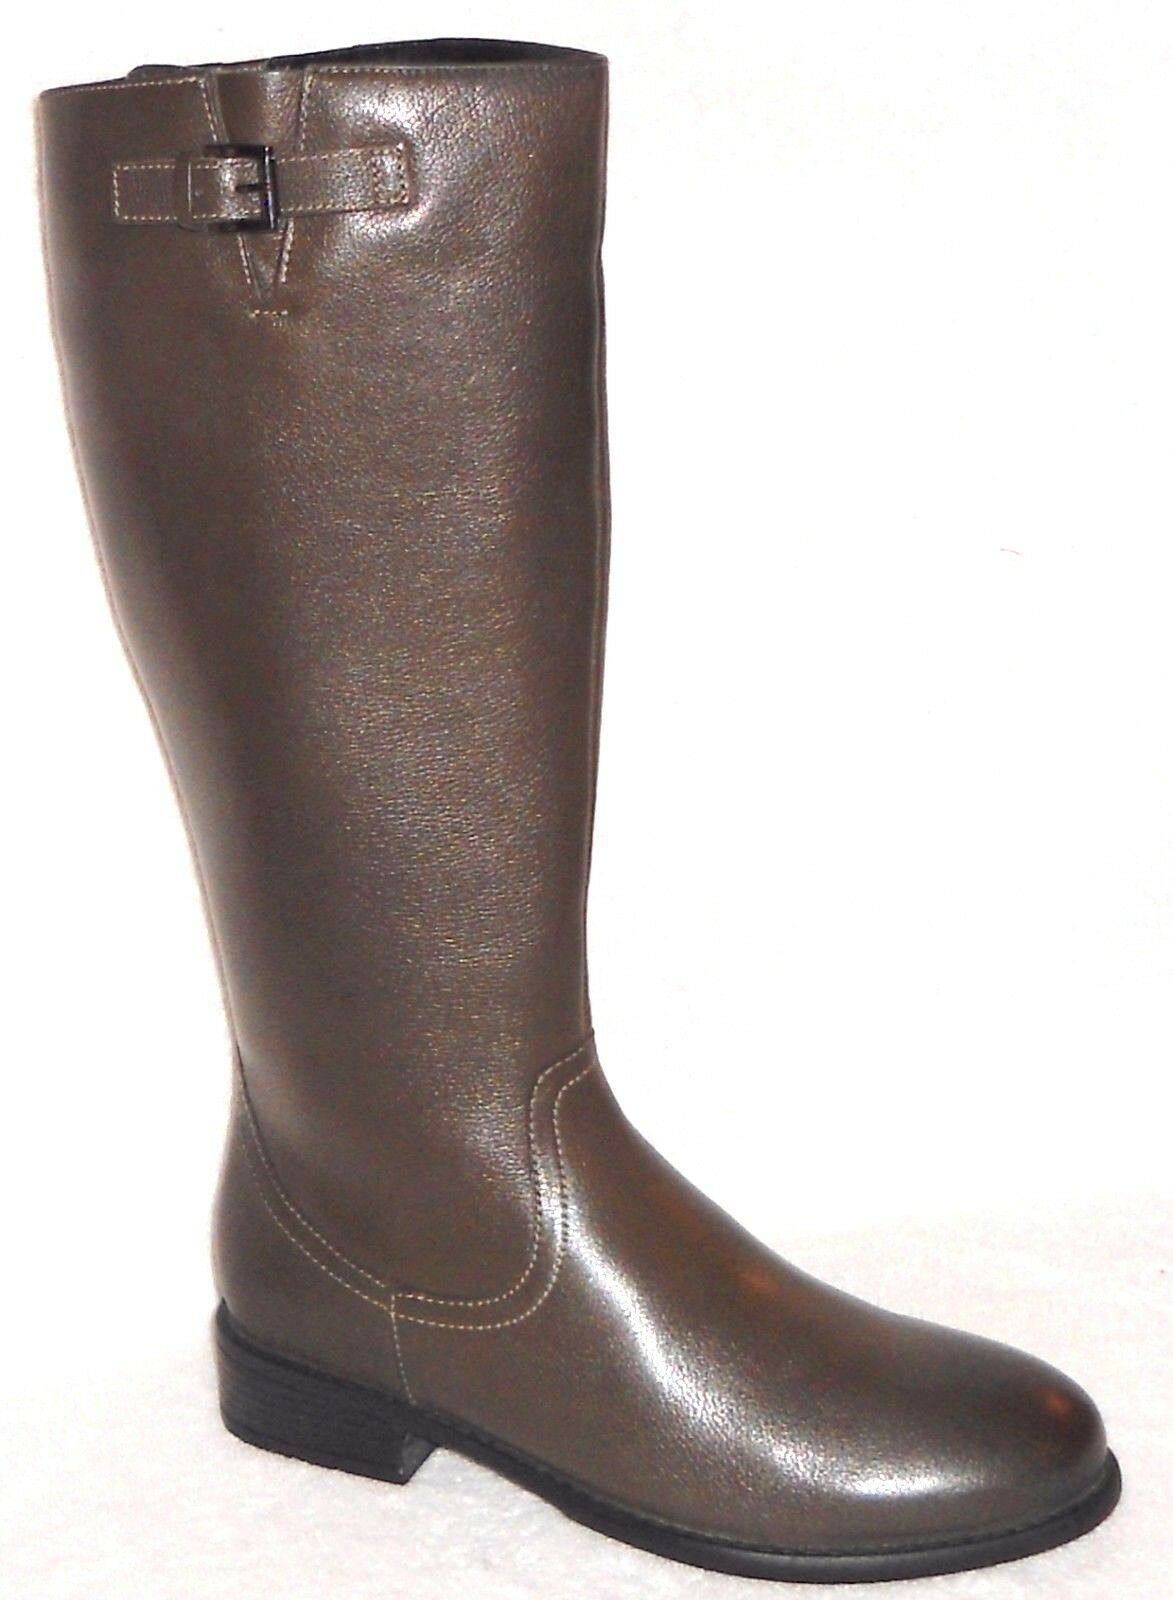 New ST. JOHN'S BAY JODIE DARK OLIVE LEATHER KNEE HIGH BOOTS 6 M